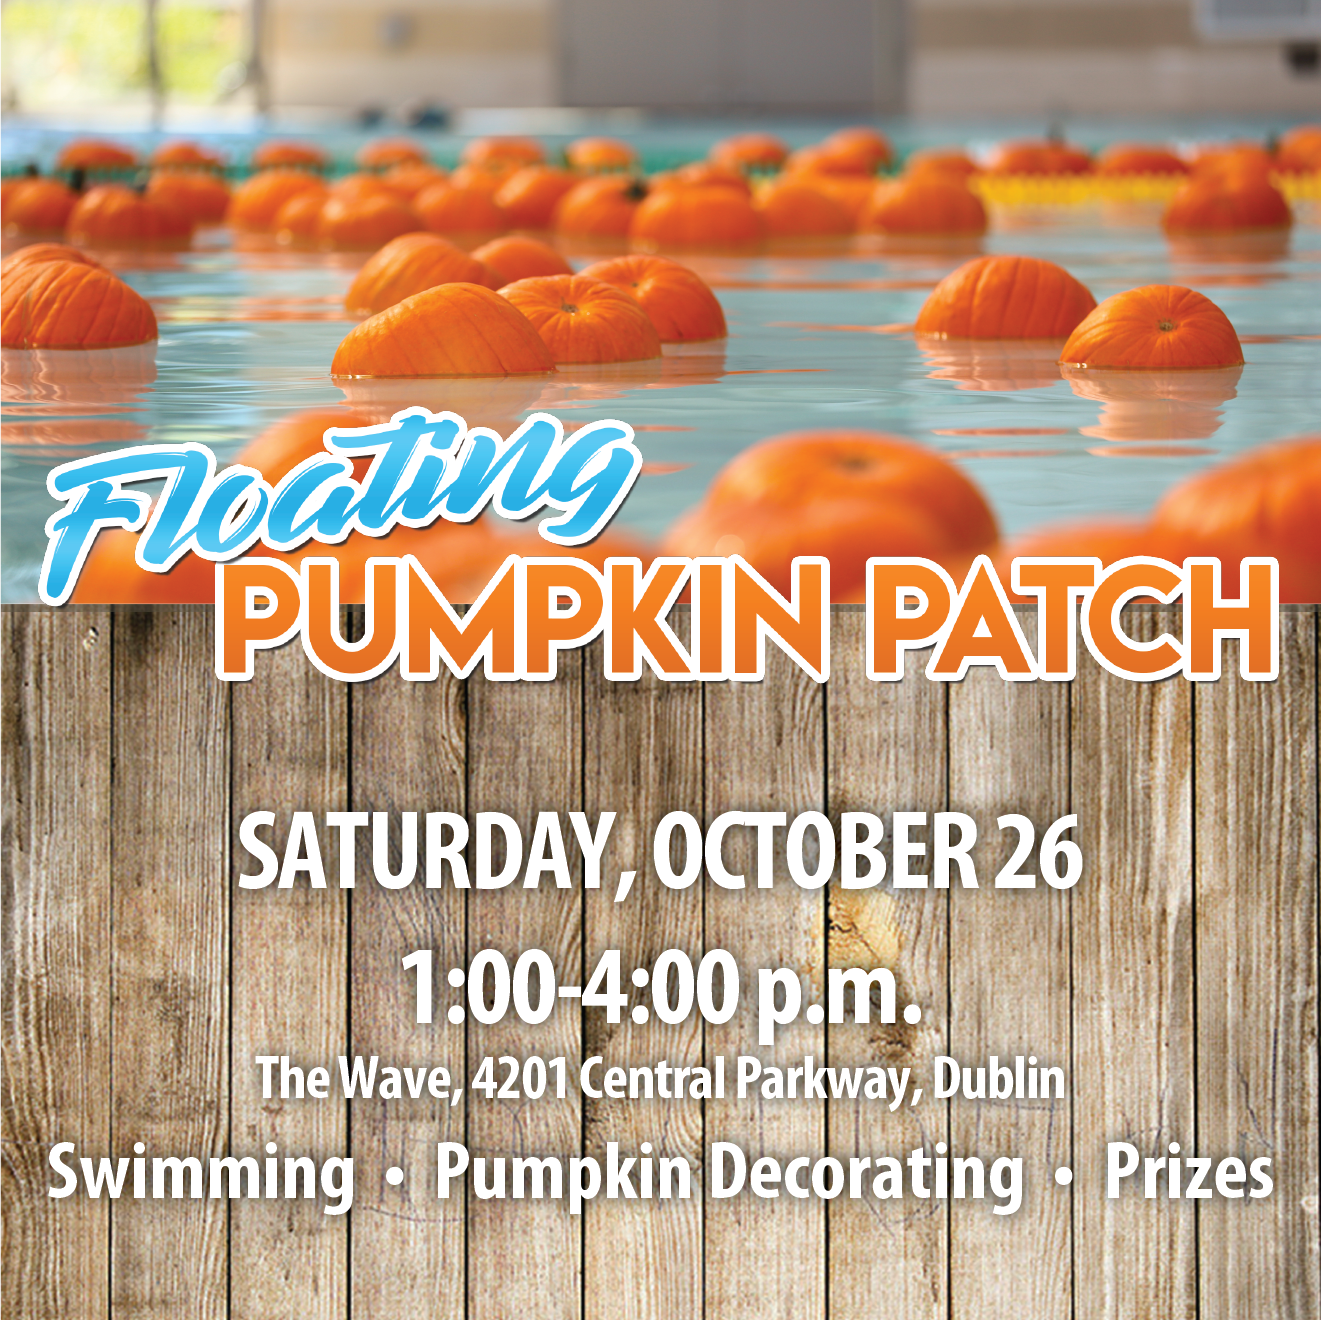 2019 floating pumpkin patch advertisement